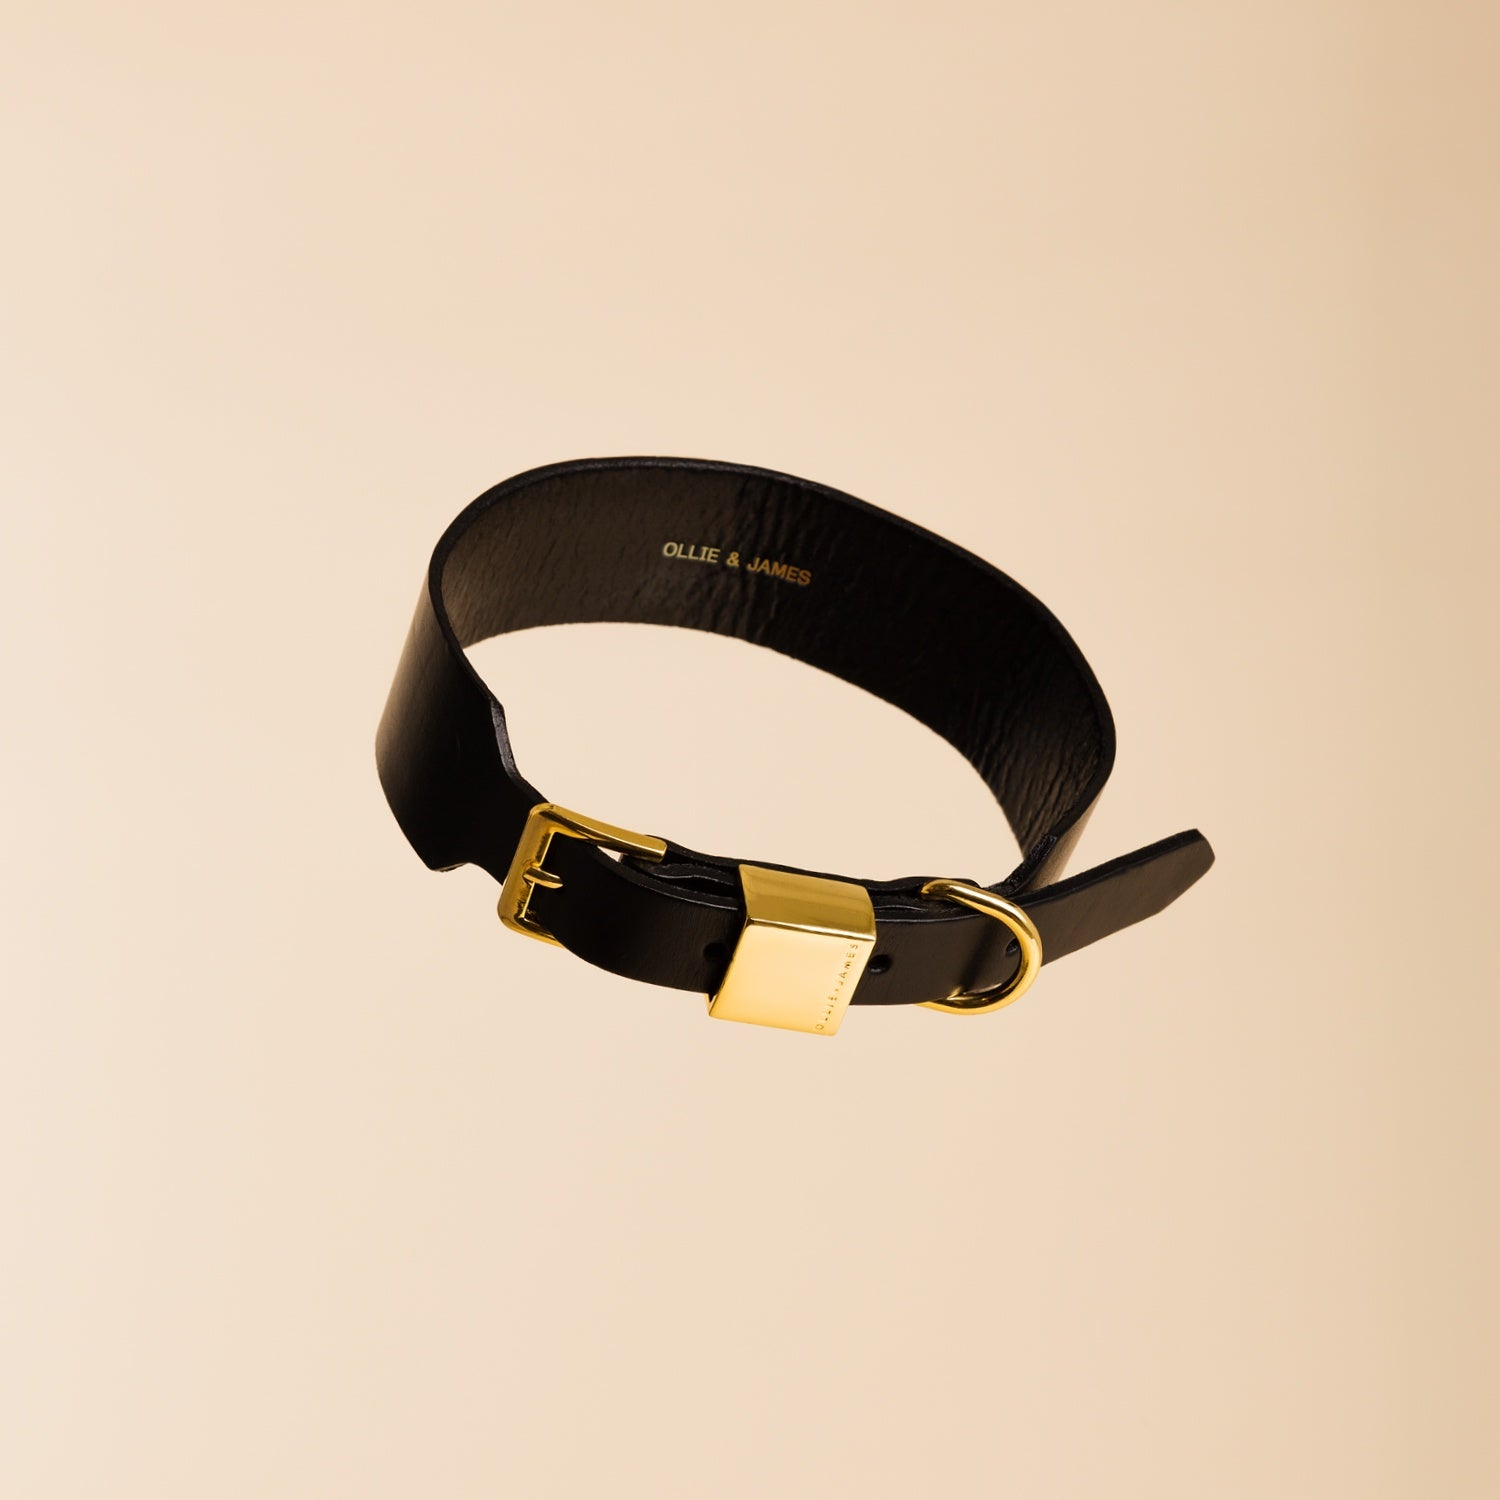 Ollie and James Dog Collar Sable